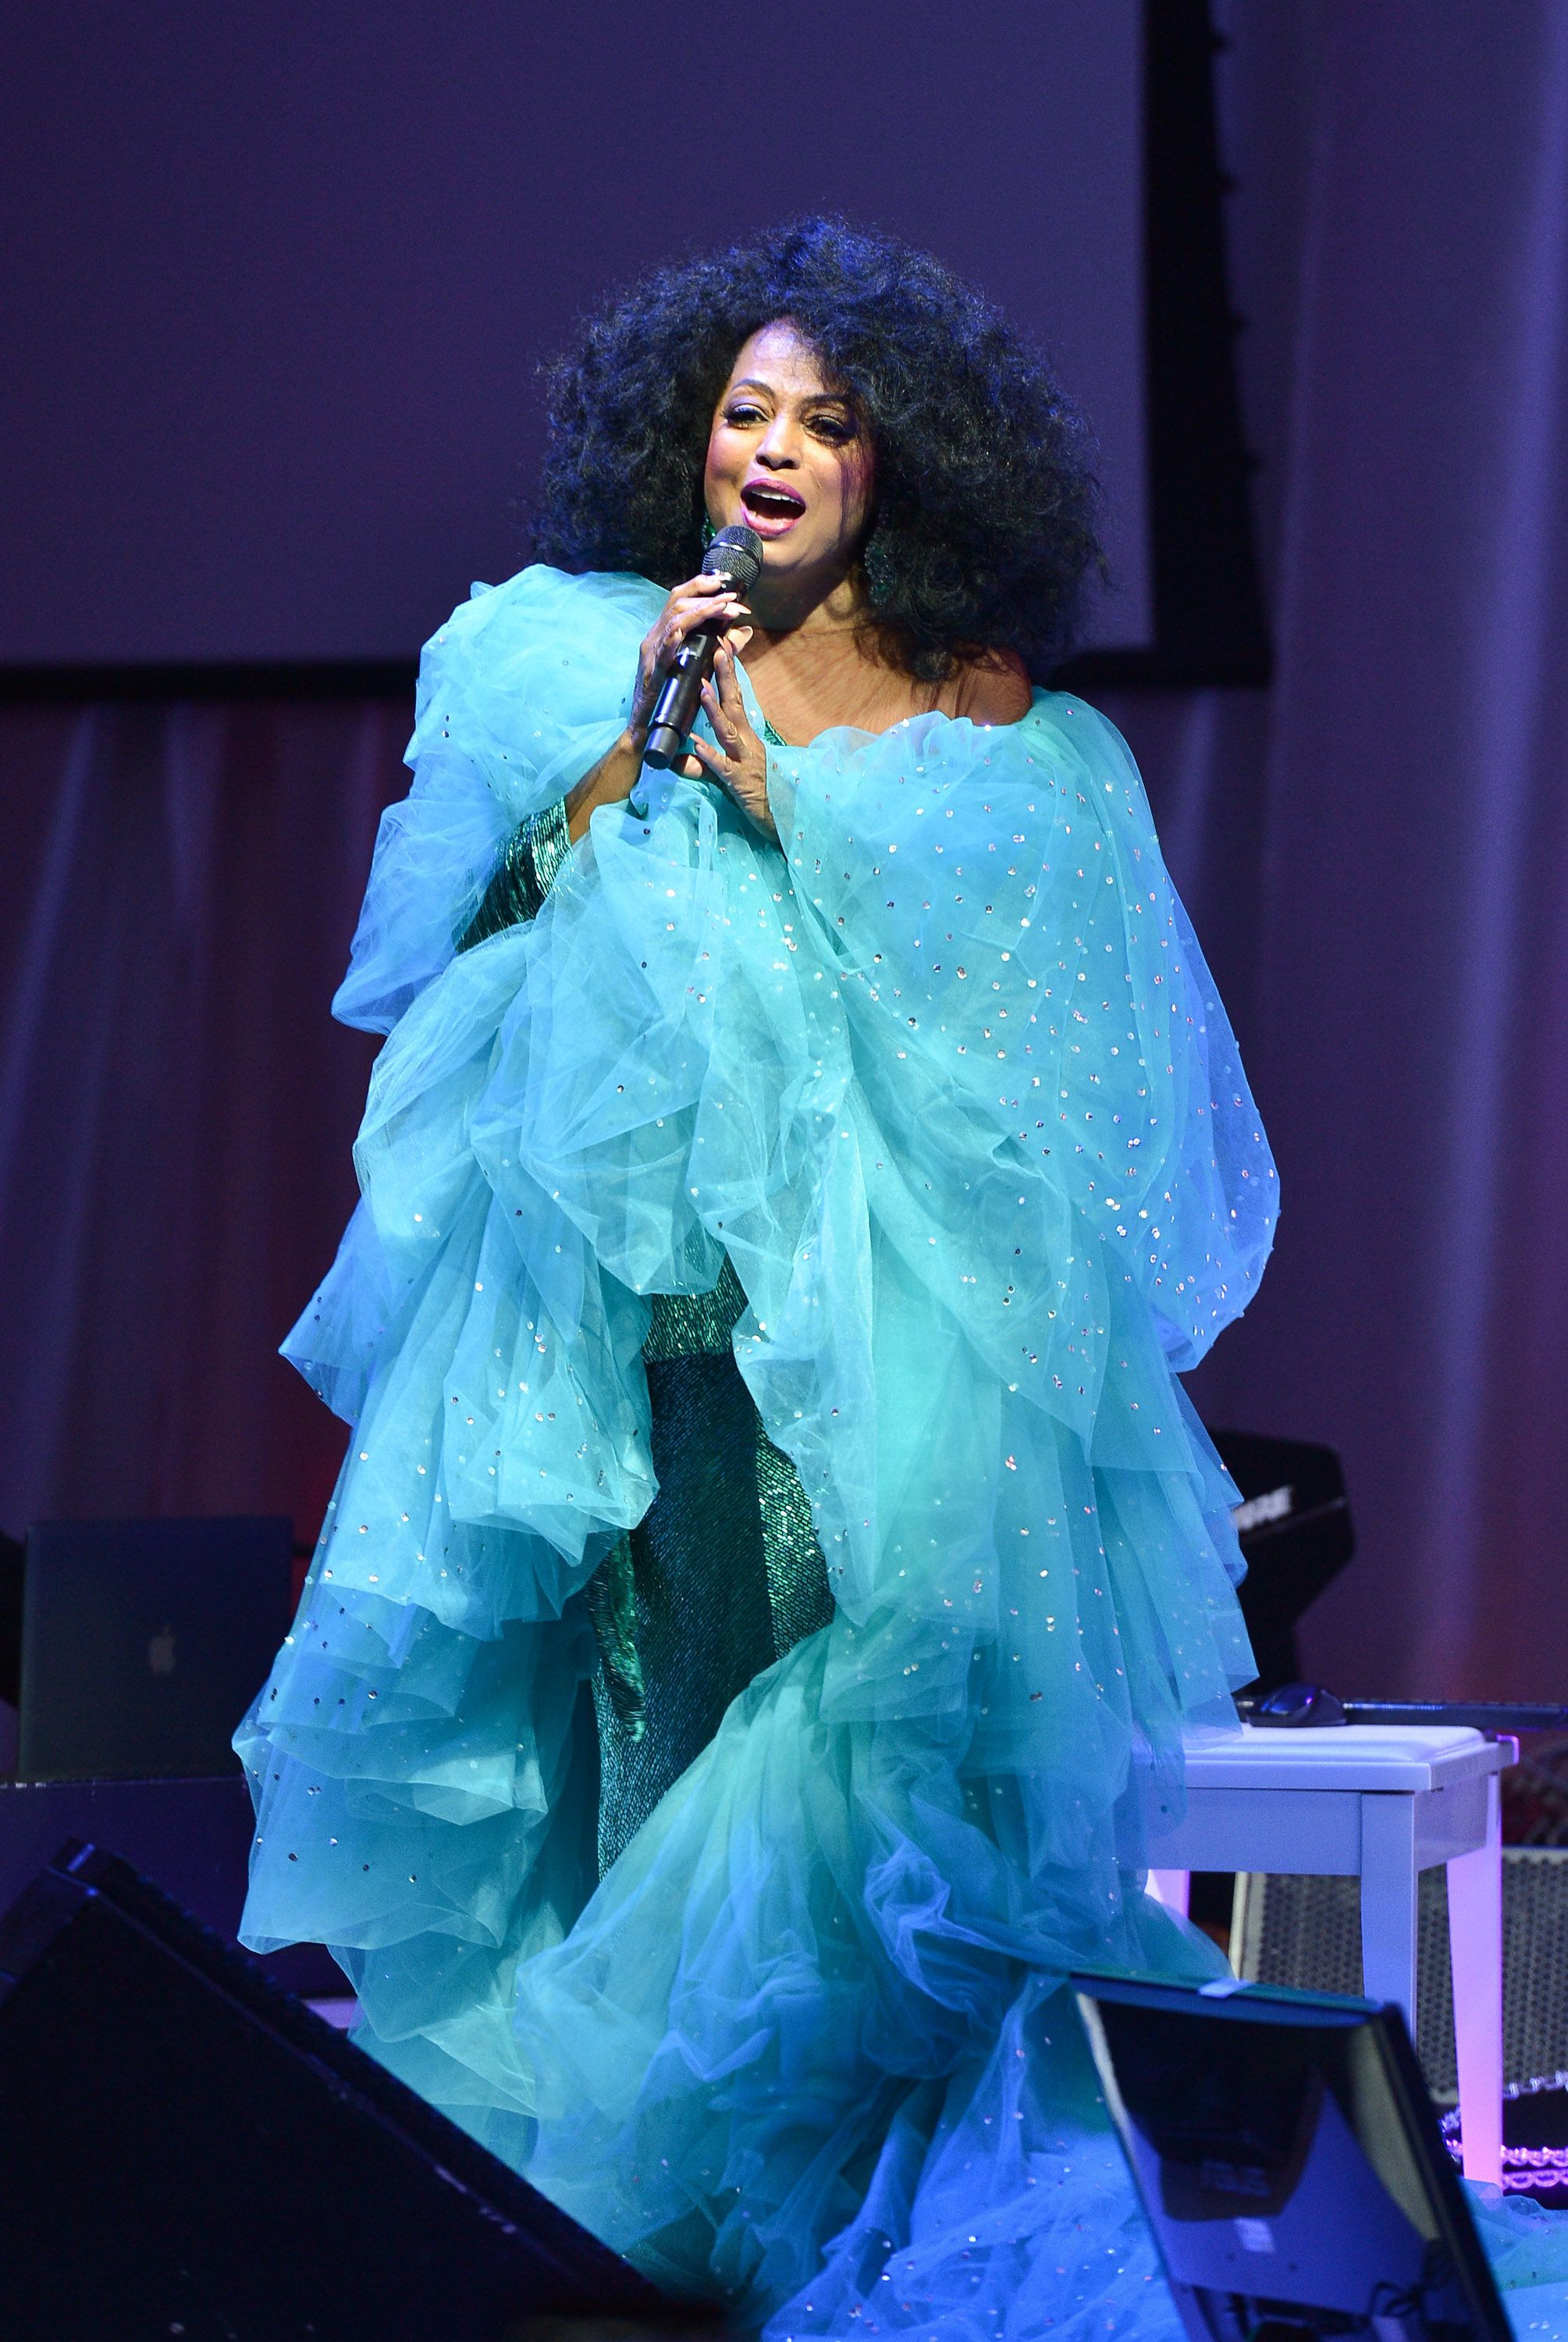 TORONTO, ON - SEPTEMBER 09:  Diana Ross  performs at the 2015 Toronto International Film Festival 'AMBI Gala' at the Four Seasons Hotel on September 9th, 2015 in Toronto, Canada.  (Photo by George Pimentel/WireImage)